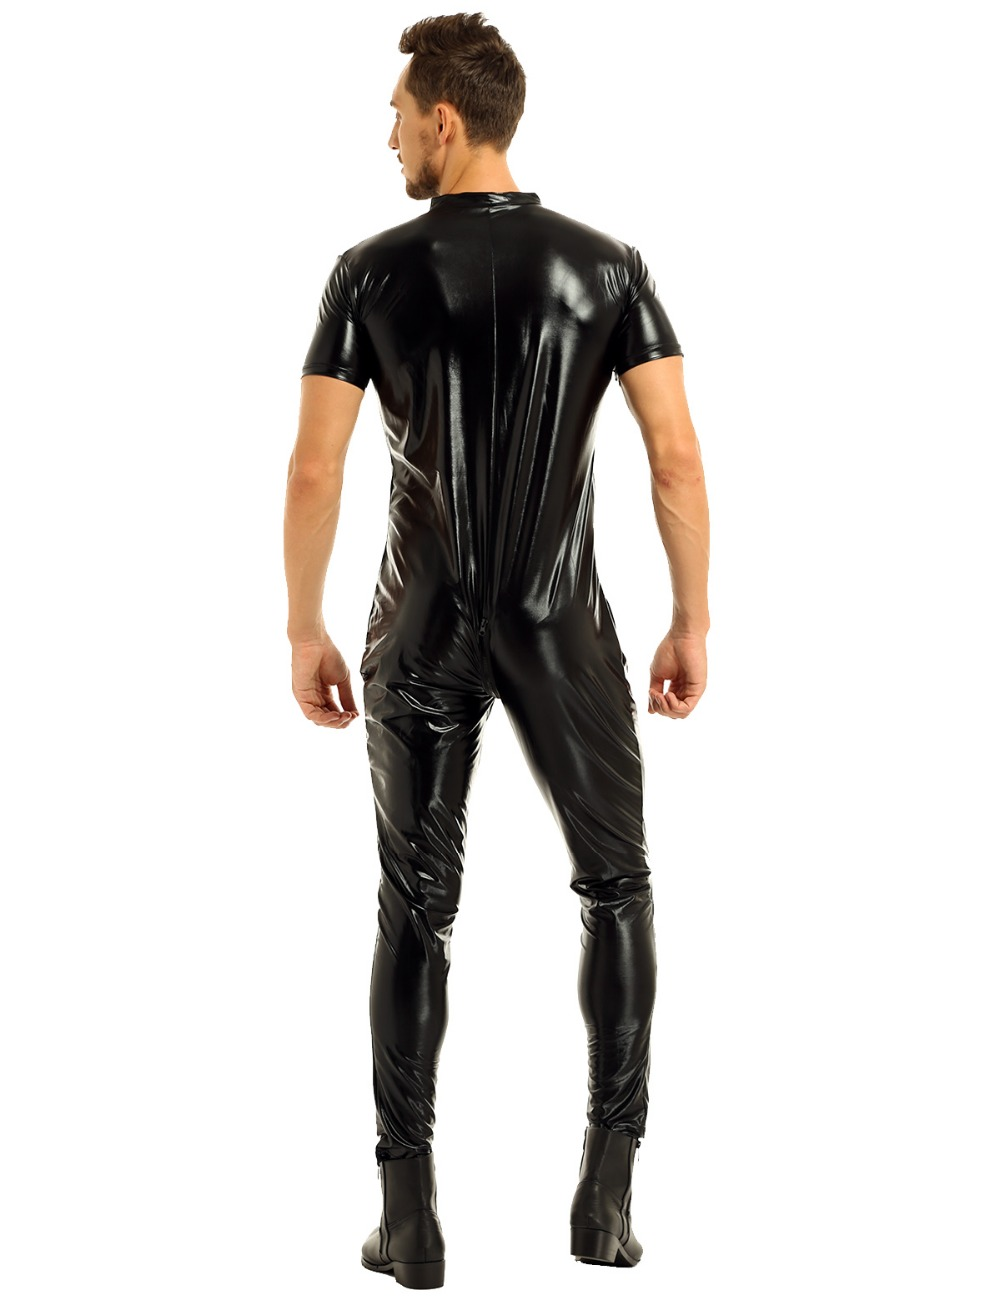 iEFiEL Mens Stretchy Faux Leather Short Sleeves Zipper Crotch Full Body Leotard Bodysuit Clubwear Overalls for Evening Party 15